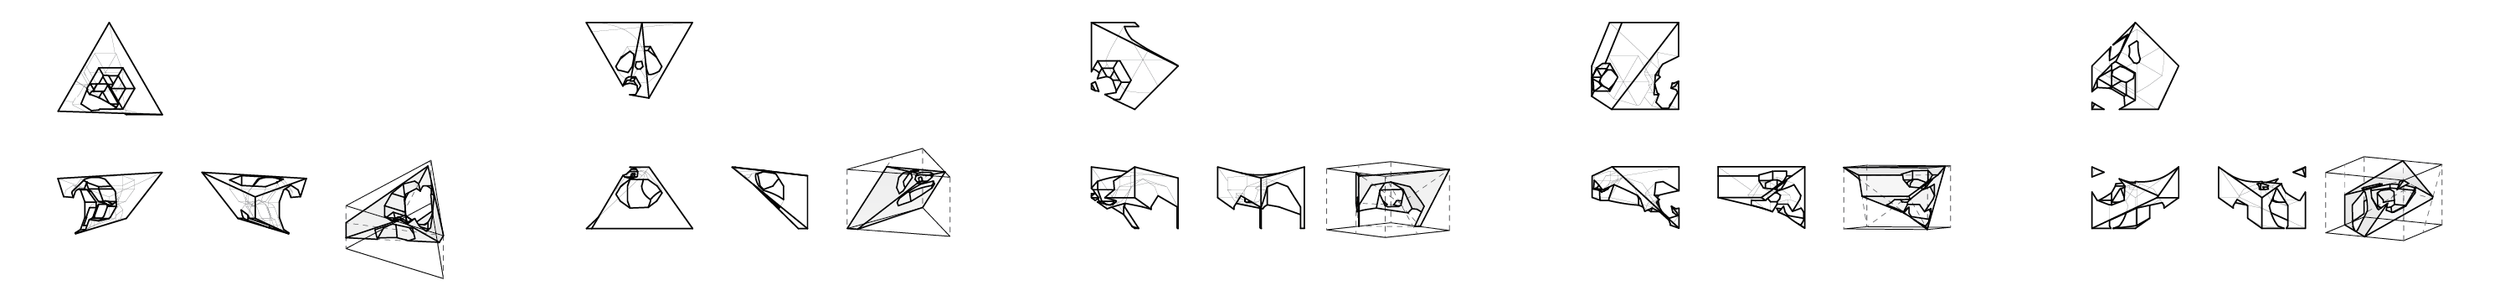 3D forms generated from polygonal cut-outs made within triangular or square parameters